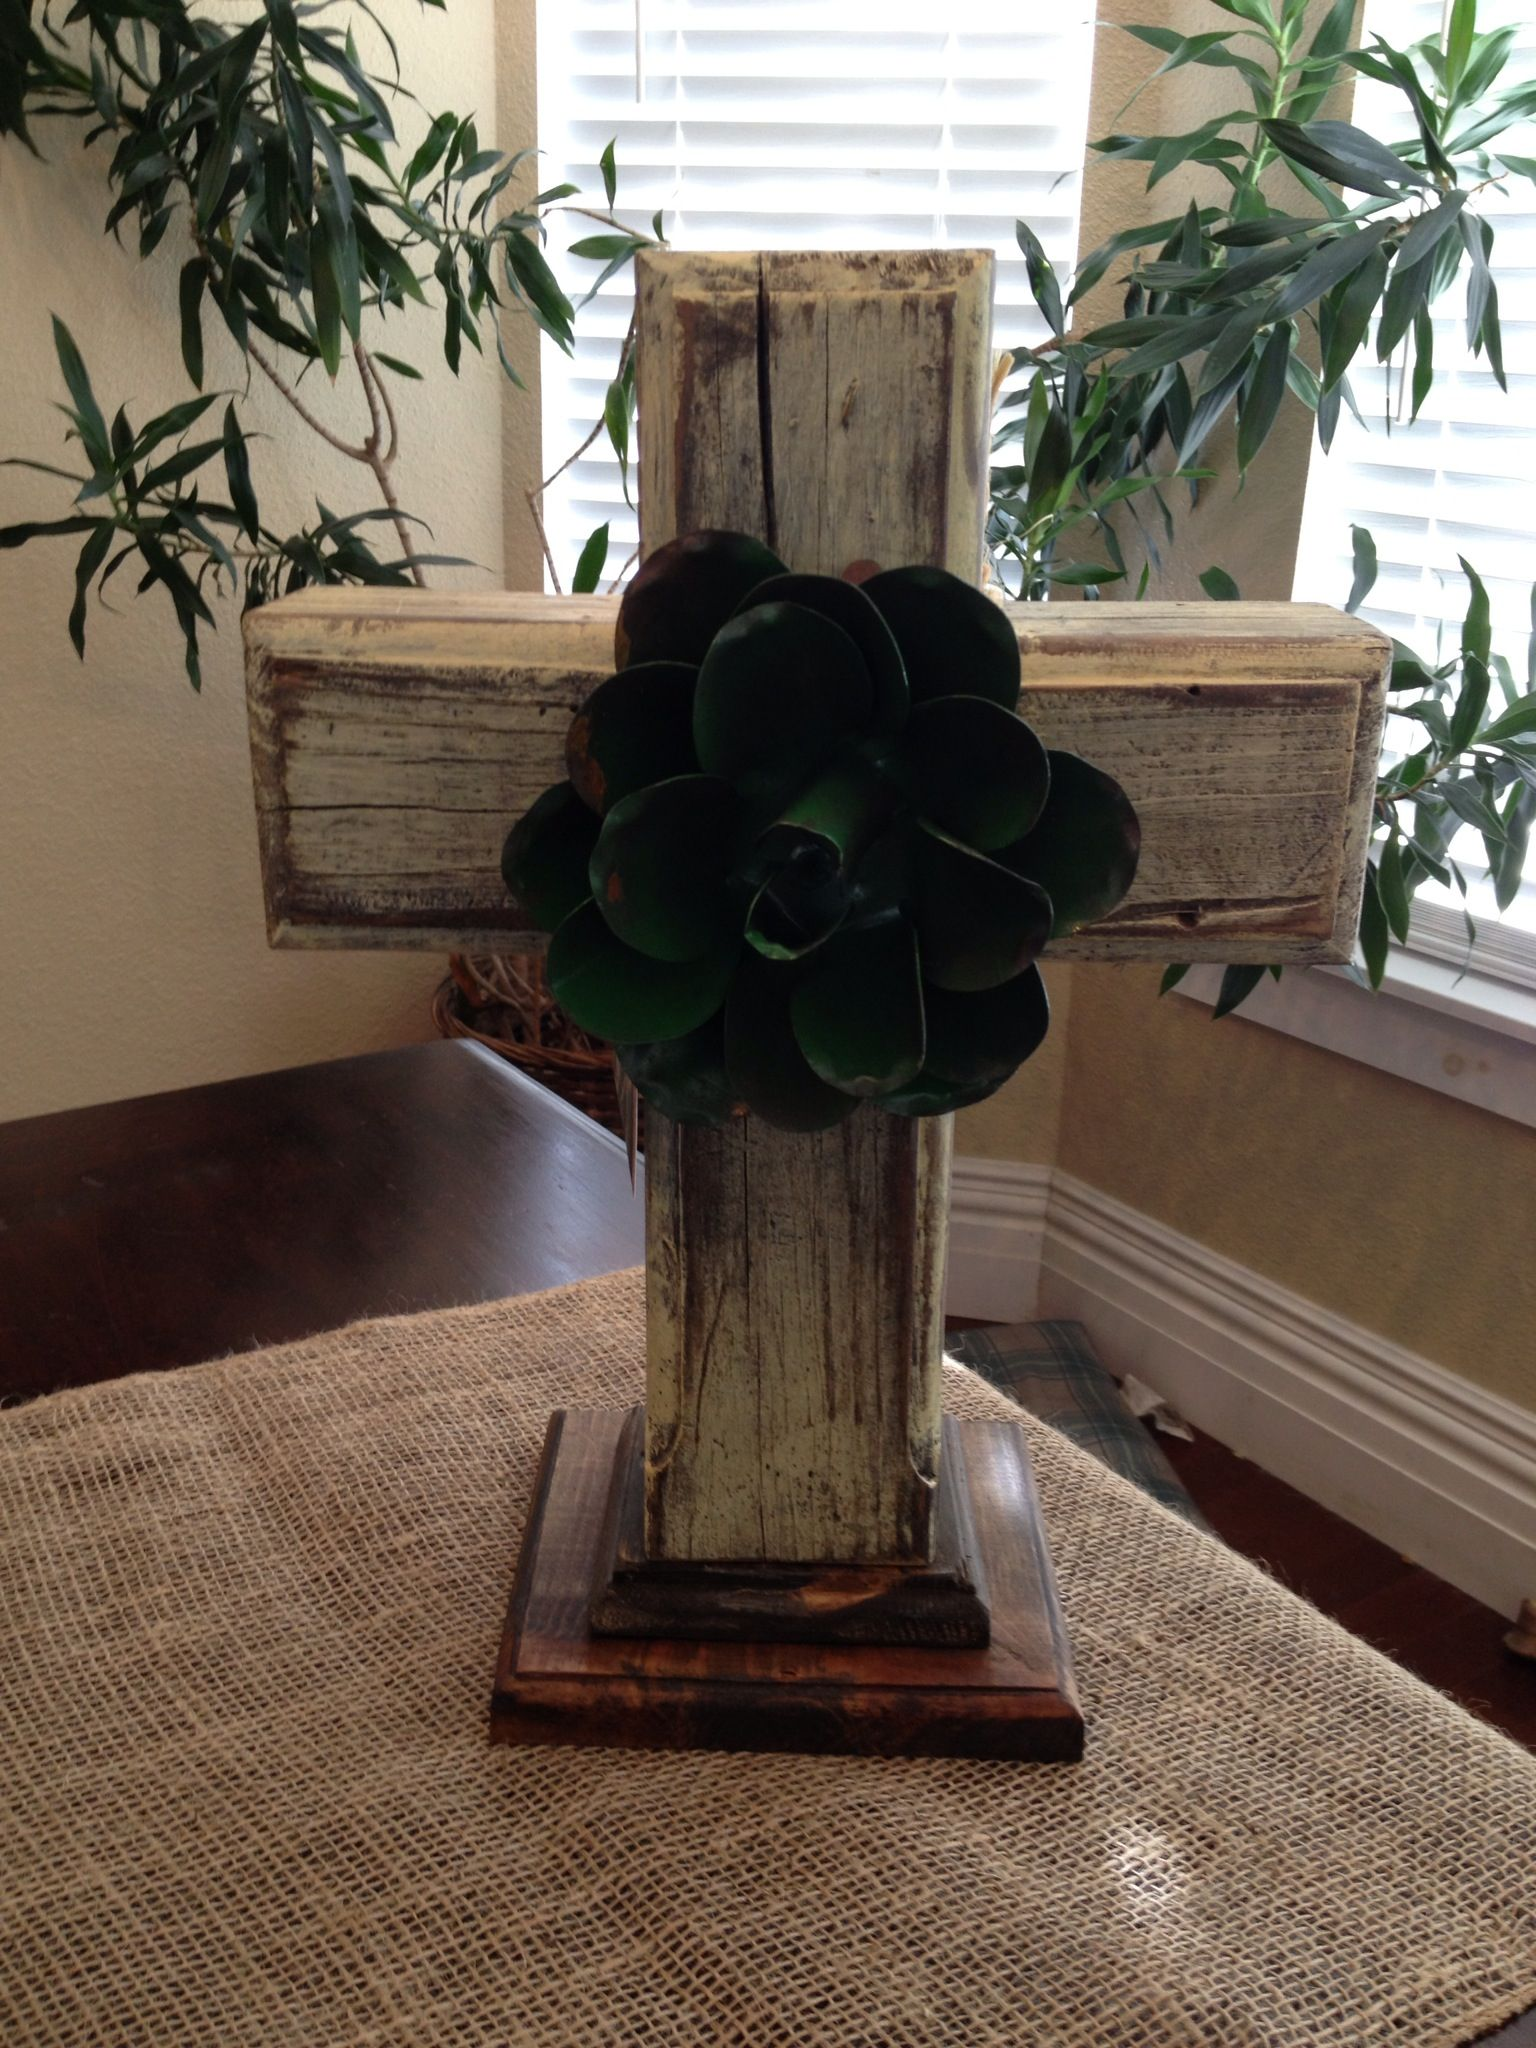 This Cross Is Made From 4x4 Pressure Treated Lumber Is And Painted A Light Yellow Butter Color With A Green Metal Flow Crosses Decor Wooden Cross Metal Flowers